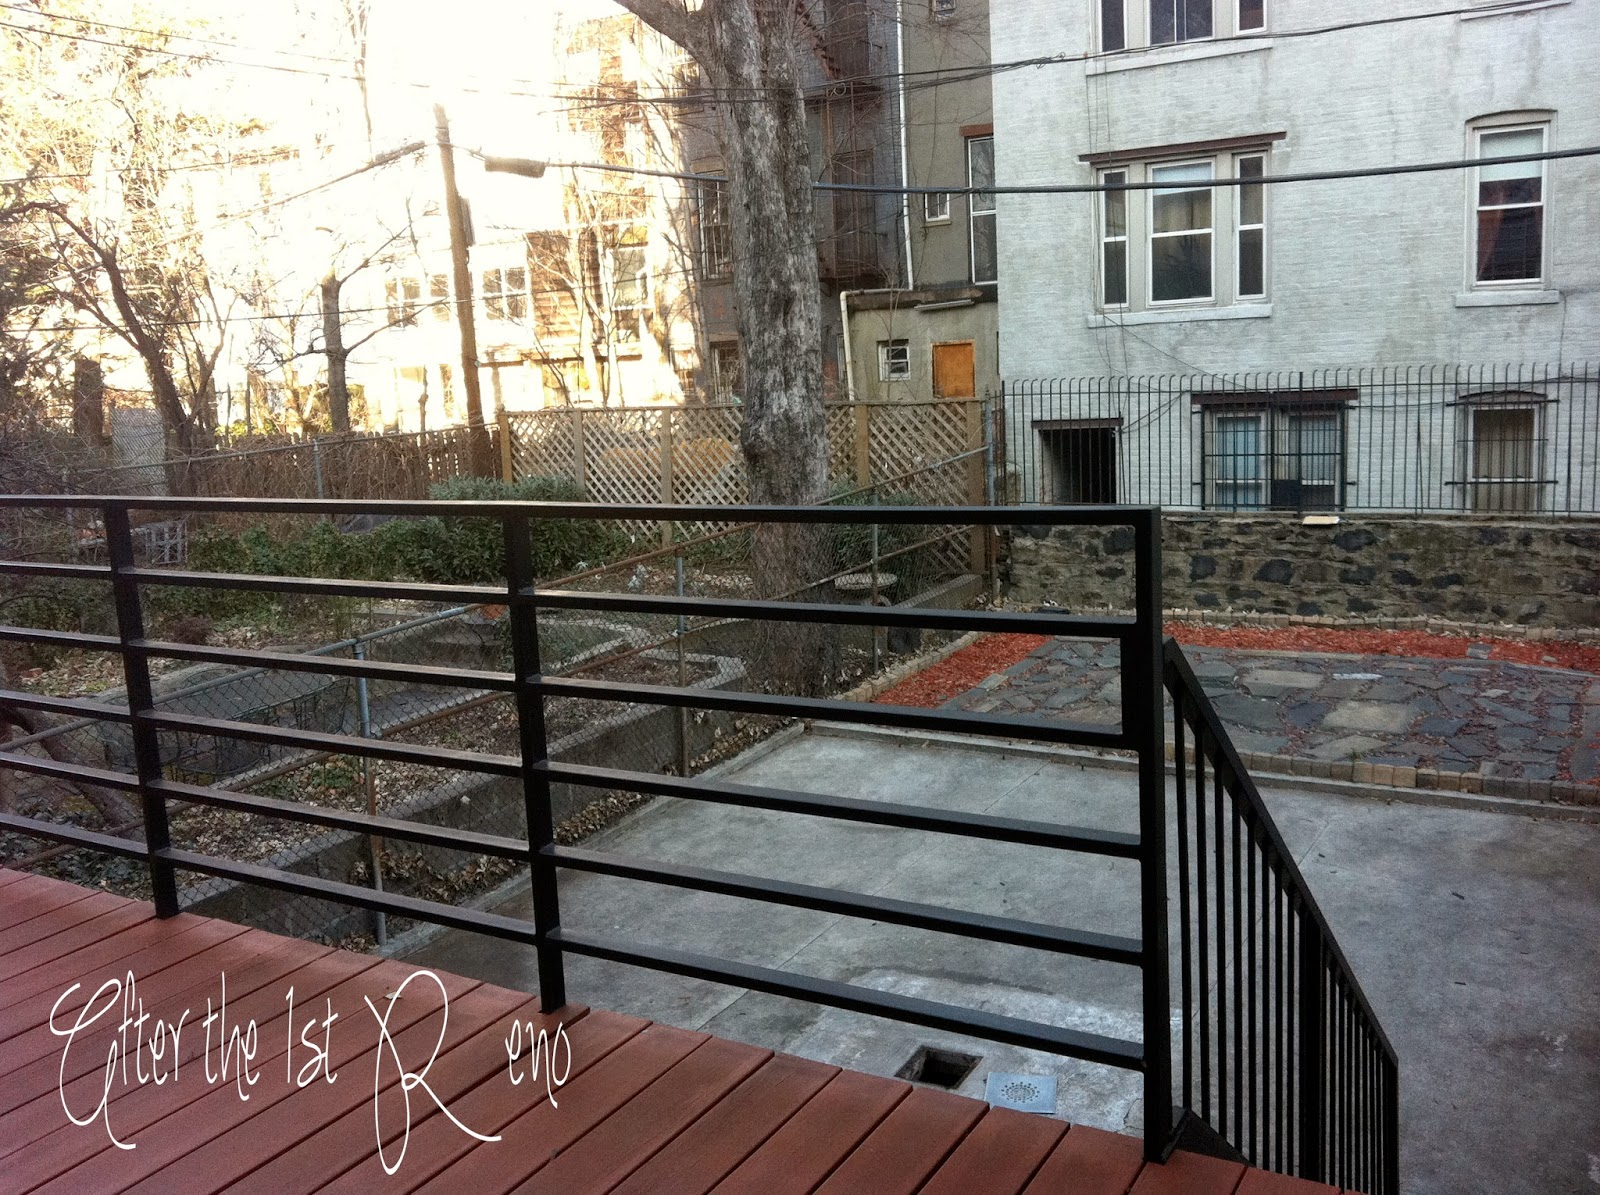 While the building saw major change, the yard still looked unwelcoming from the newly added deck.